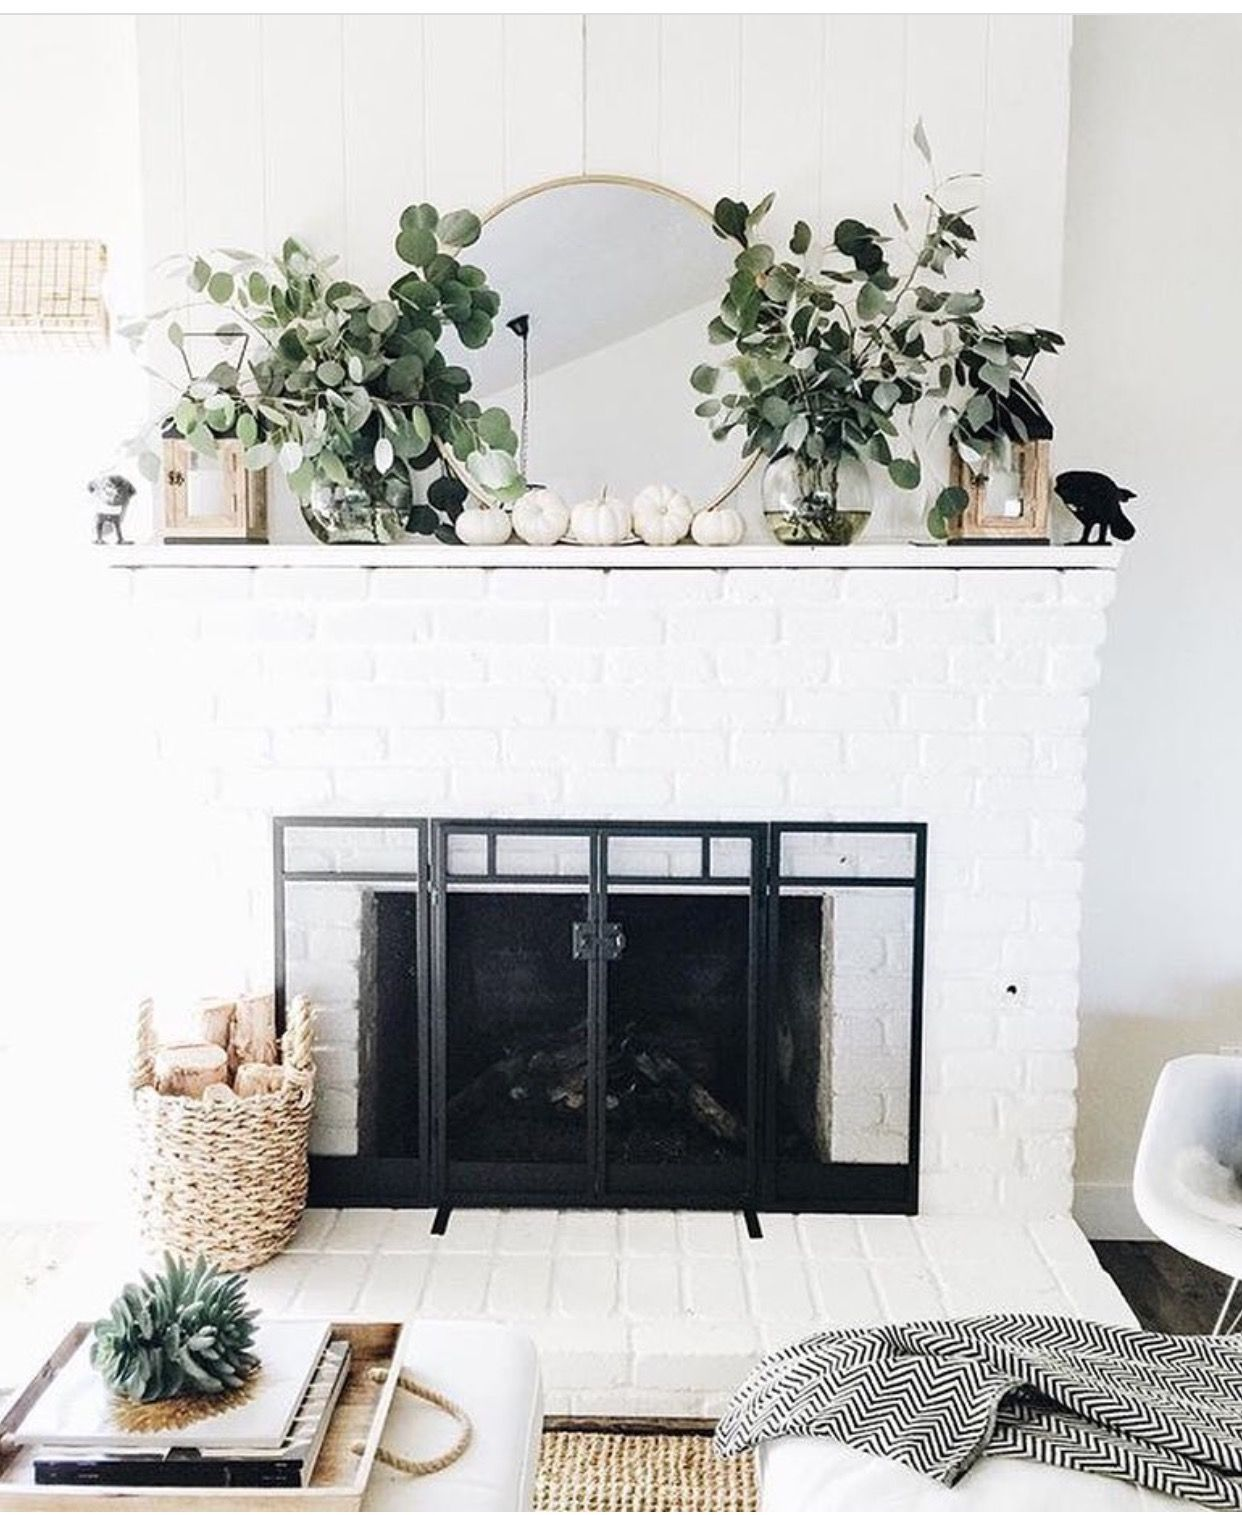 Pin By Aileen Allen On Home Makeover Inspo White Brick Fireplace Home Decor Fall Home Decor